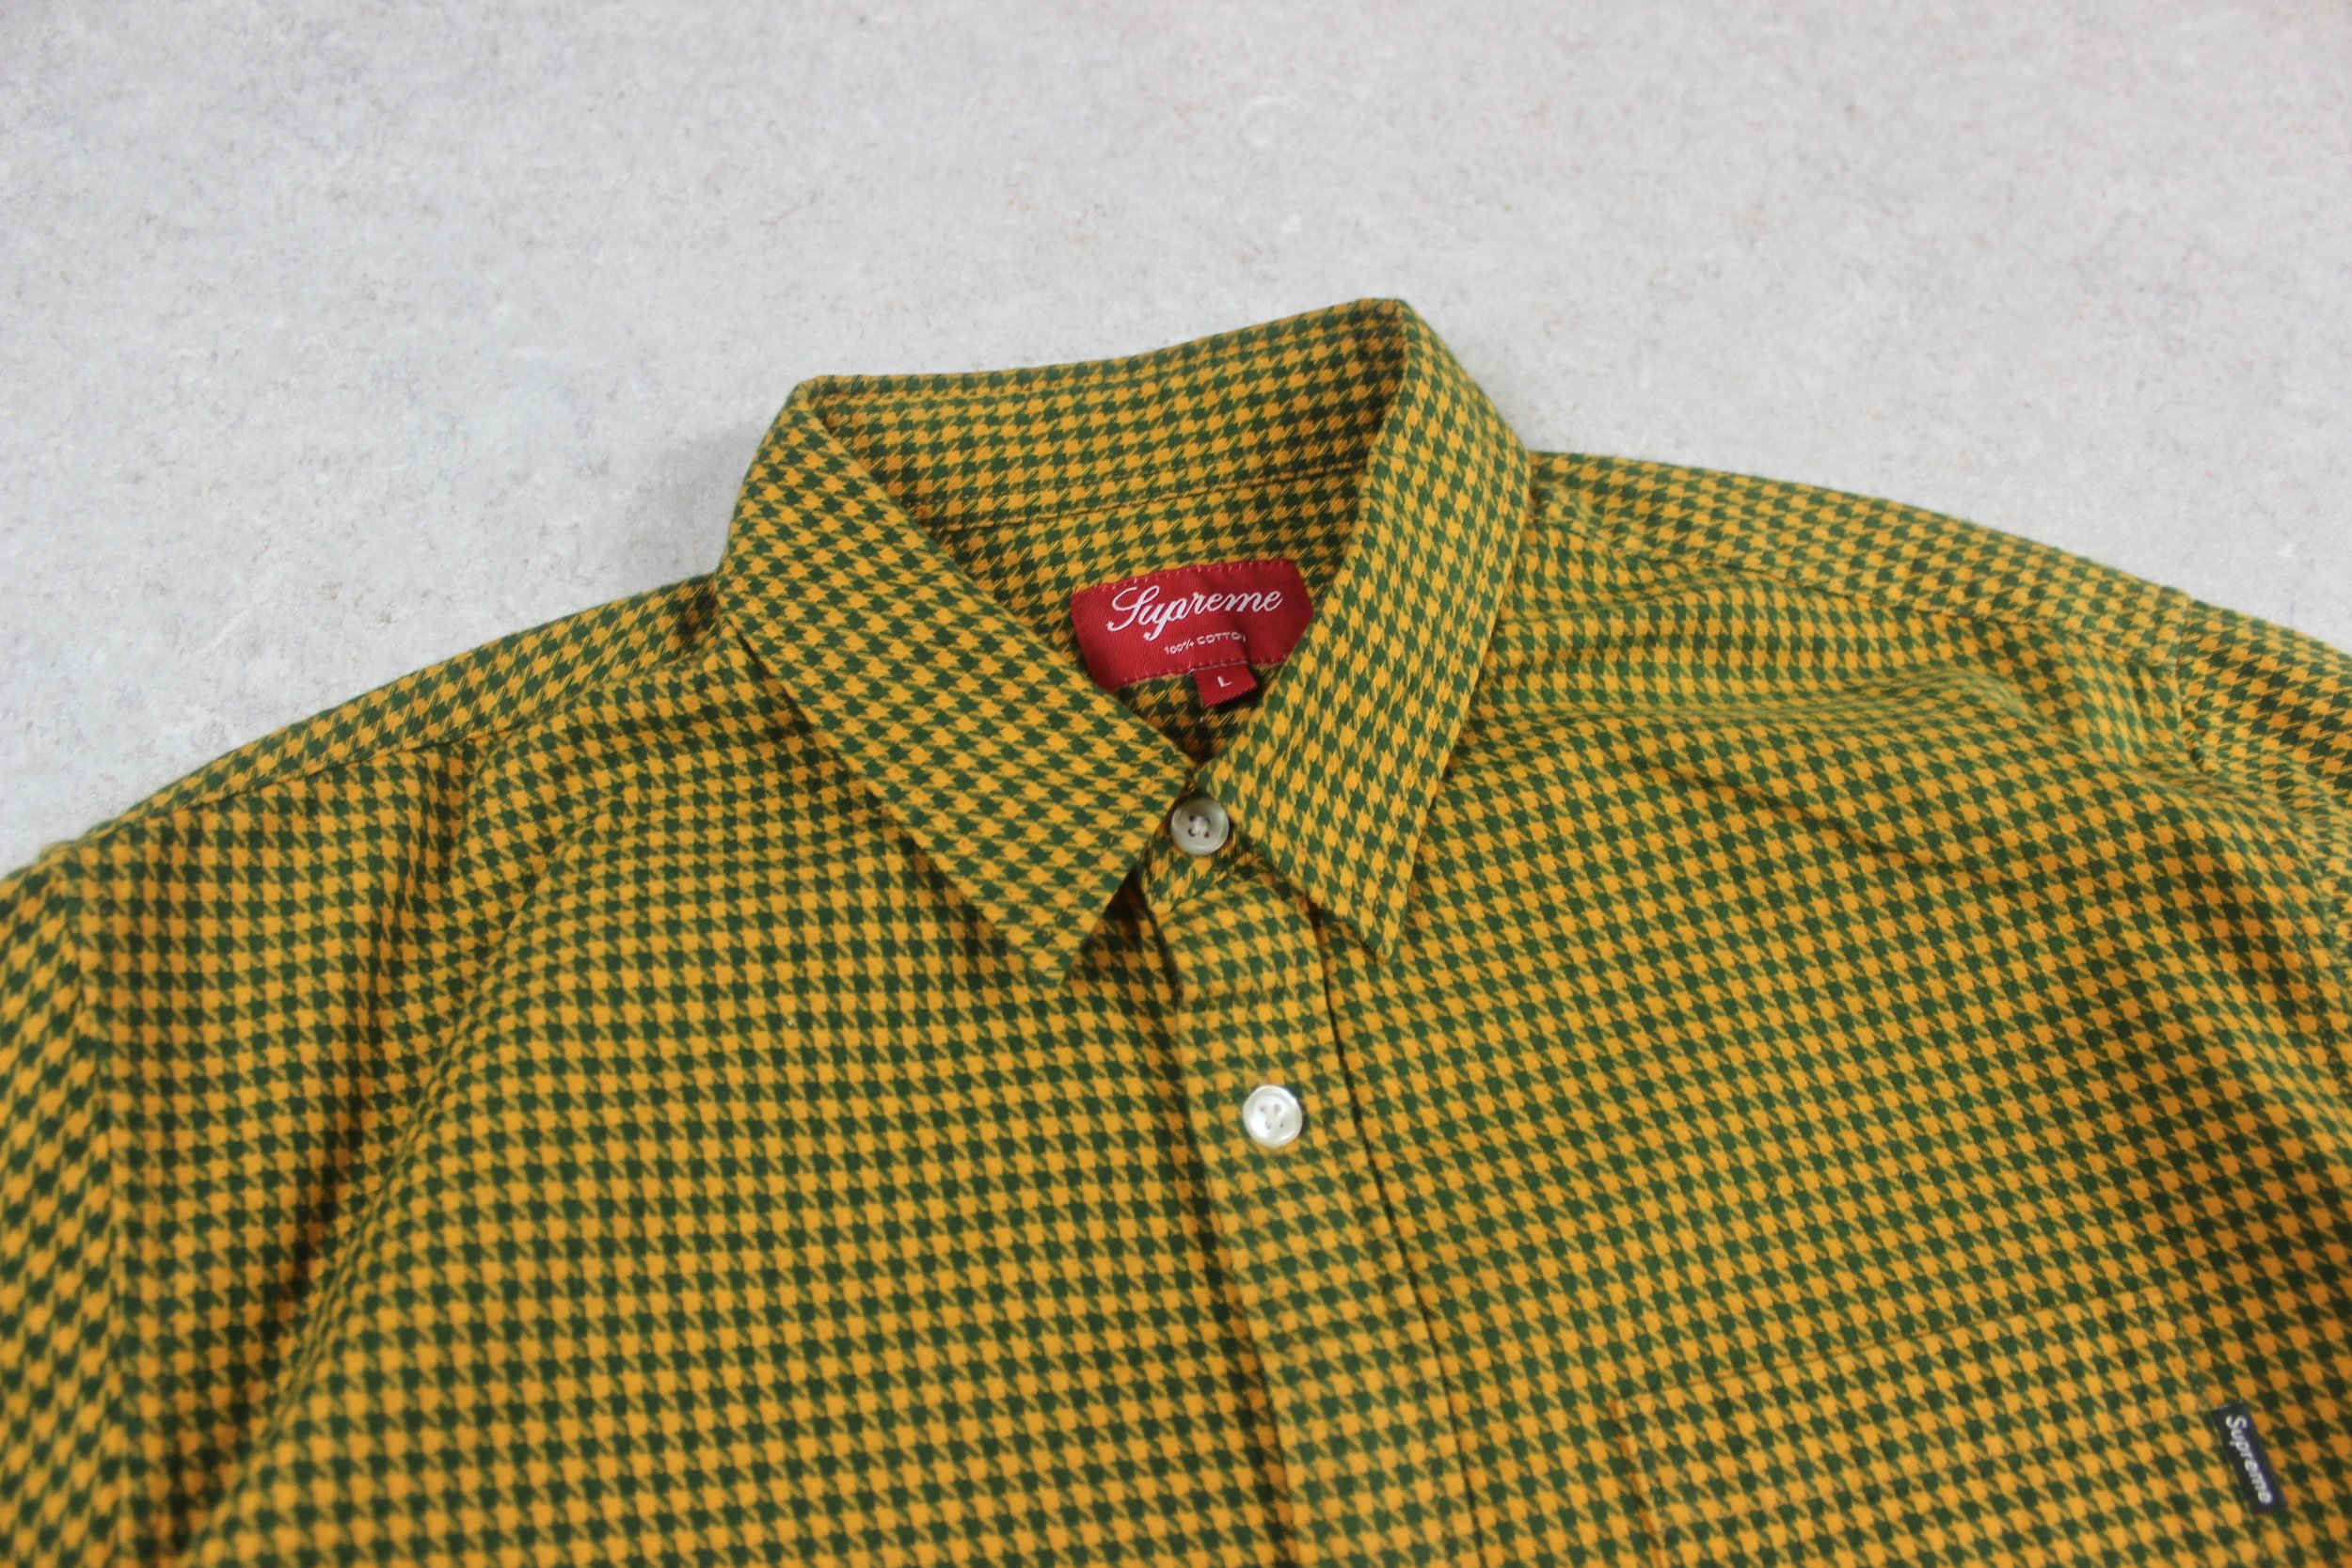 420f6679e66e Supreme - Shirt - Yellow/Green Check Flannel - Large — melior.